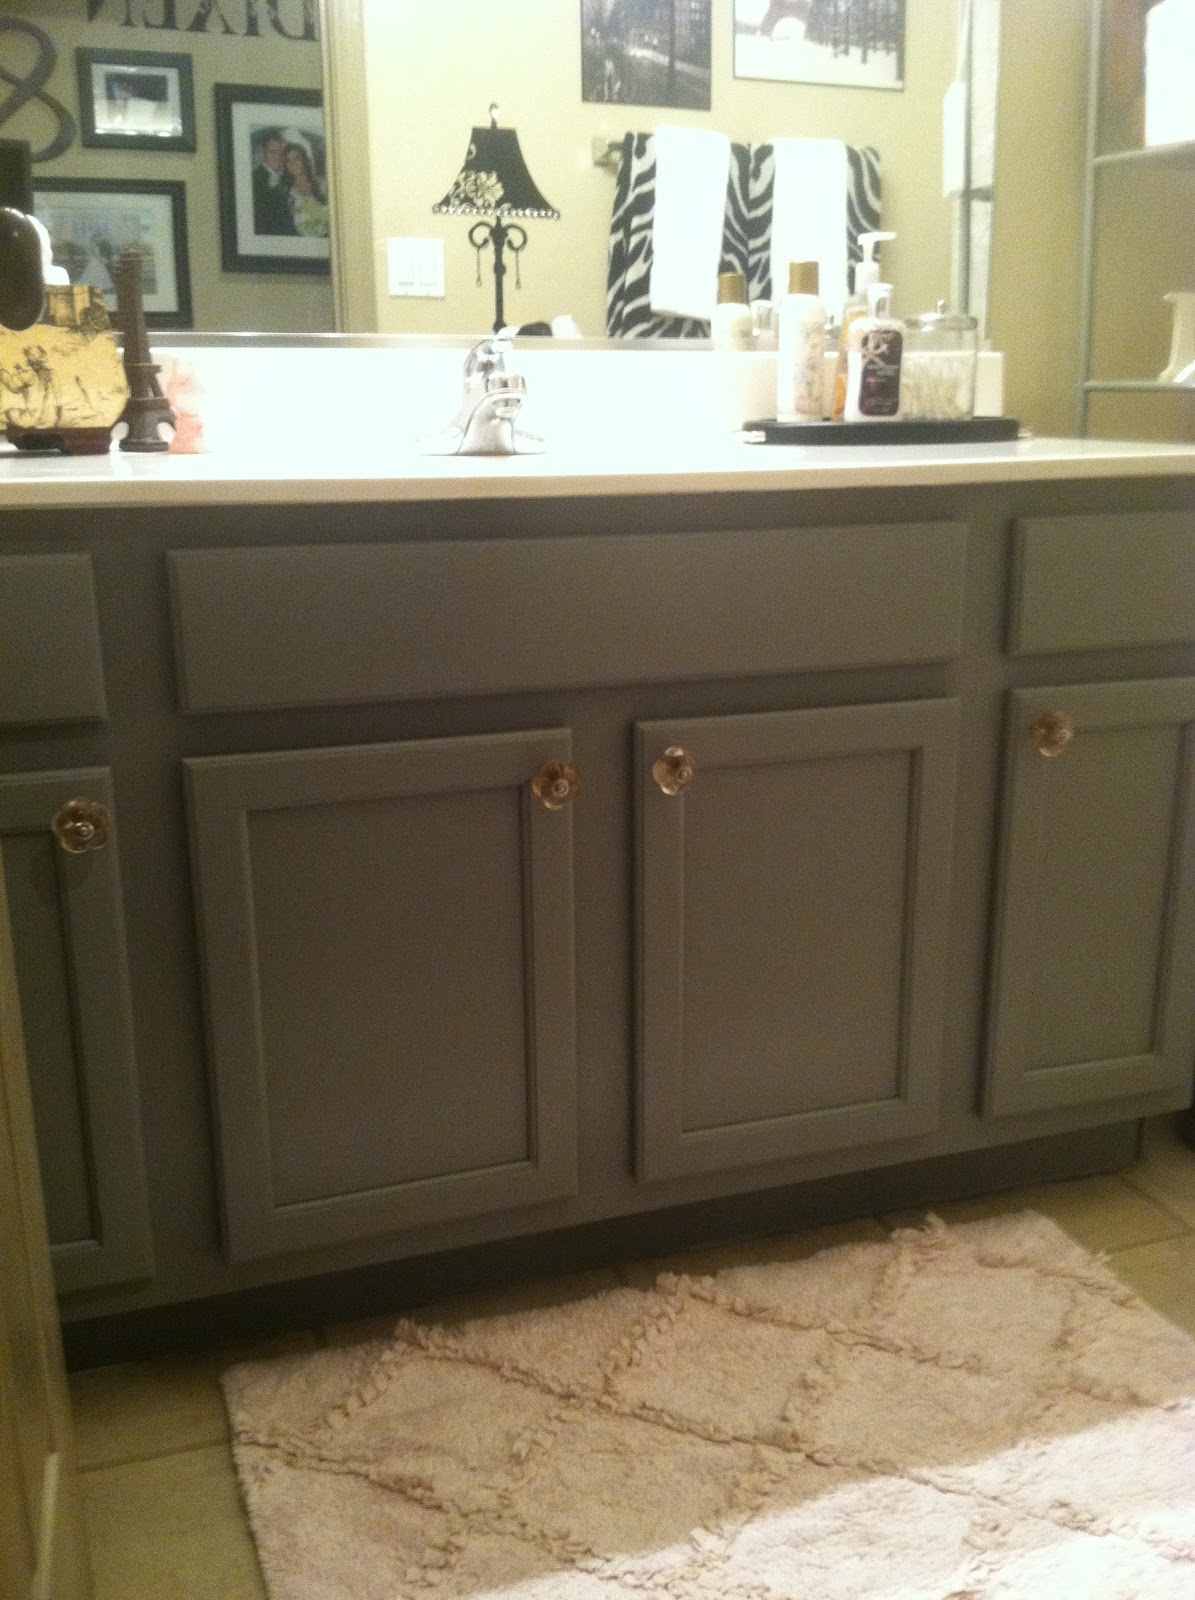 How to do a cheap and easy bathroom update anyone can do Paint bathroom cabinets